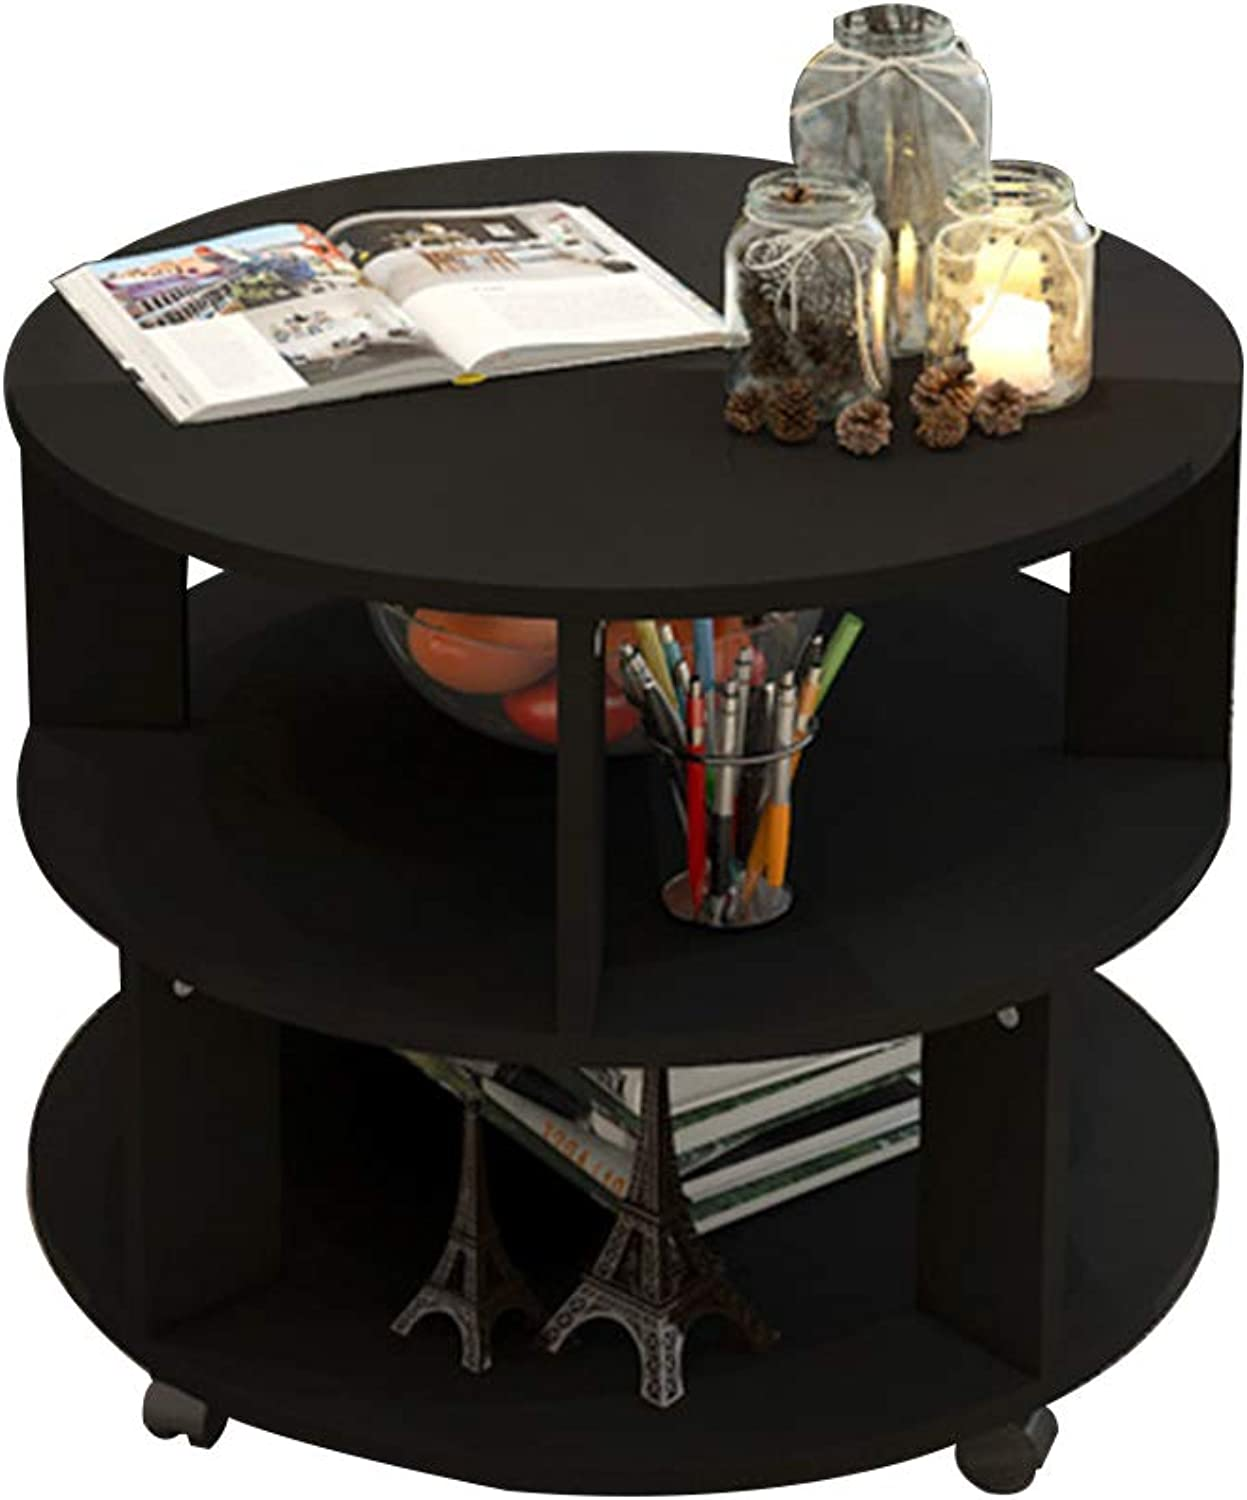 Coffee Table Mobile Corner Table, Simple Multi-Functional Storage Small Round Table, Suitable for Sofa Side Bedside (Size   48  48  48cm)